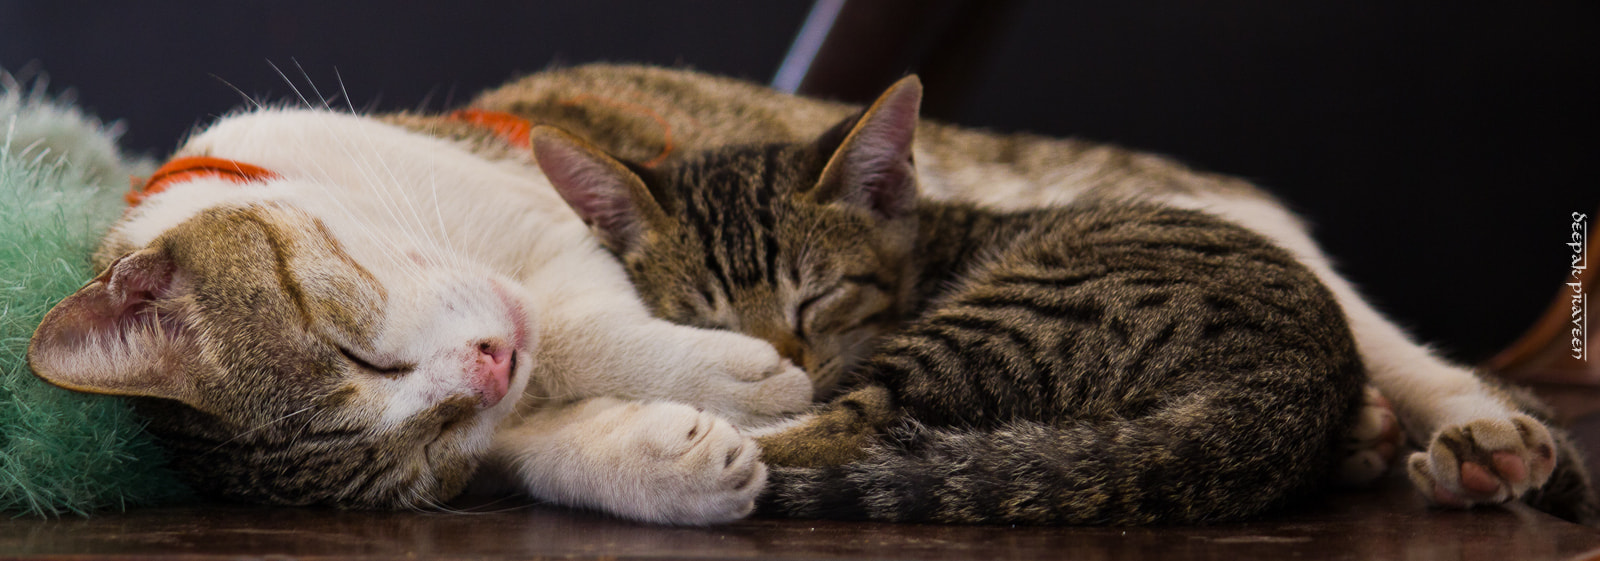 Photograph Kitty Nap by Deepak Praveen on 500px